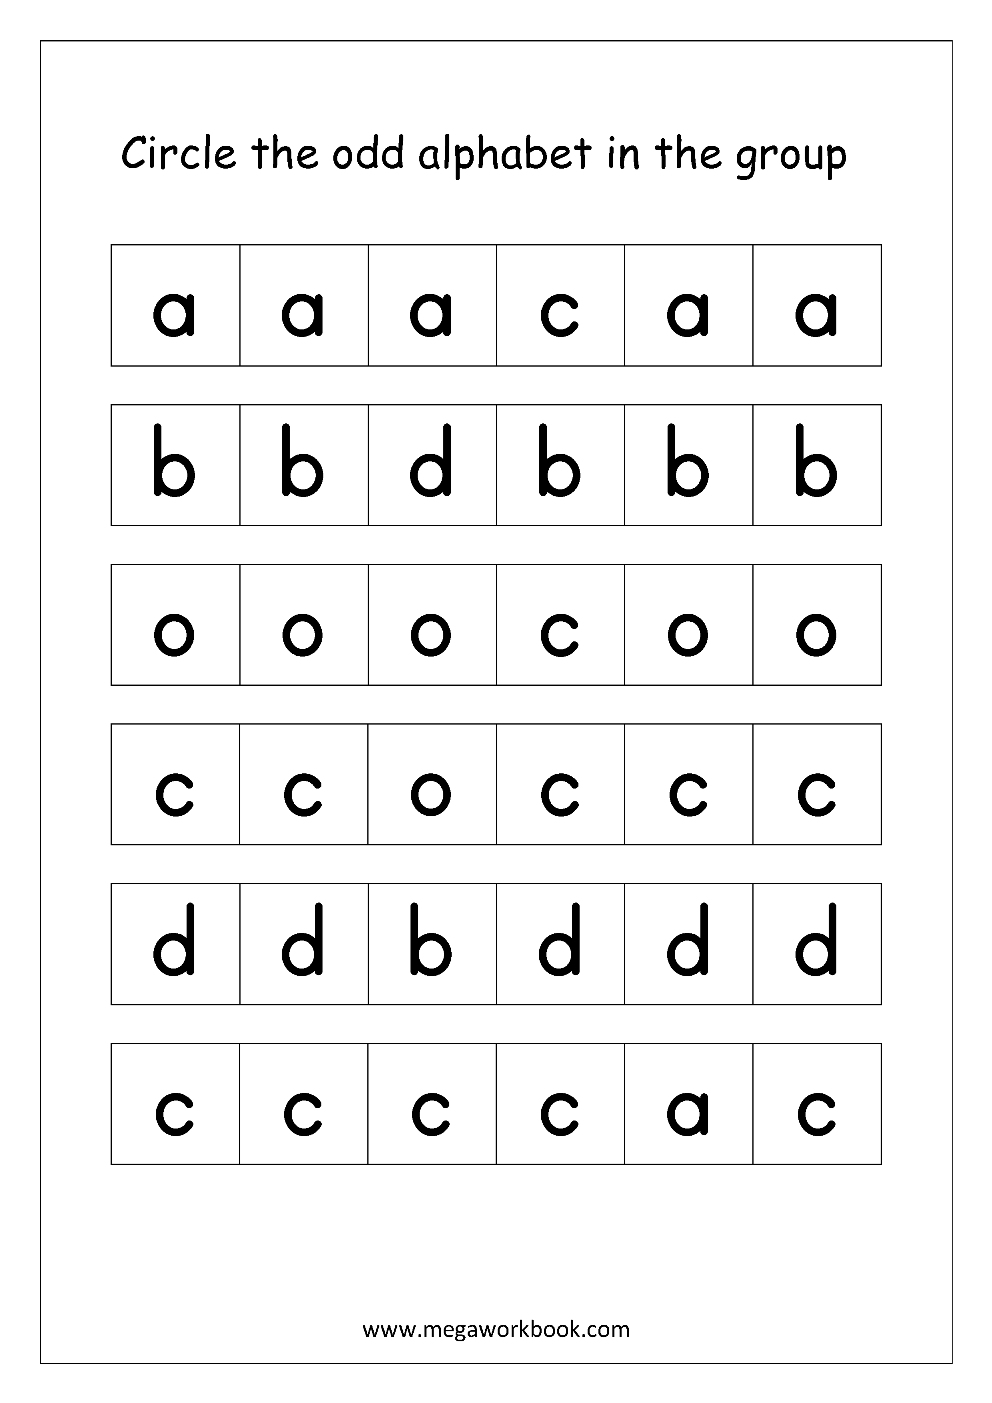 odd one out printable english worksheet confusing alphabets circle the odd out printable one odd